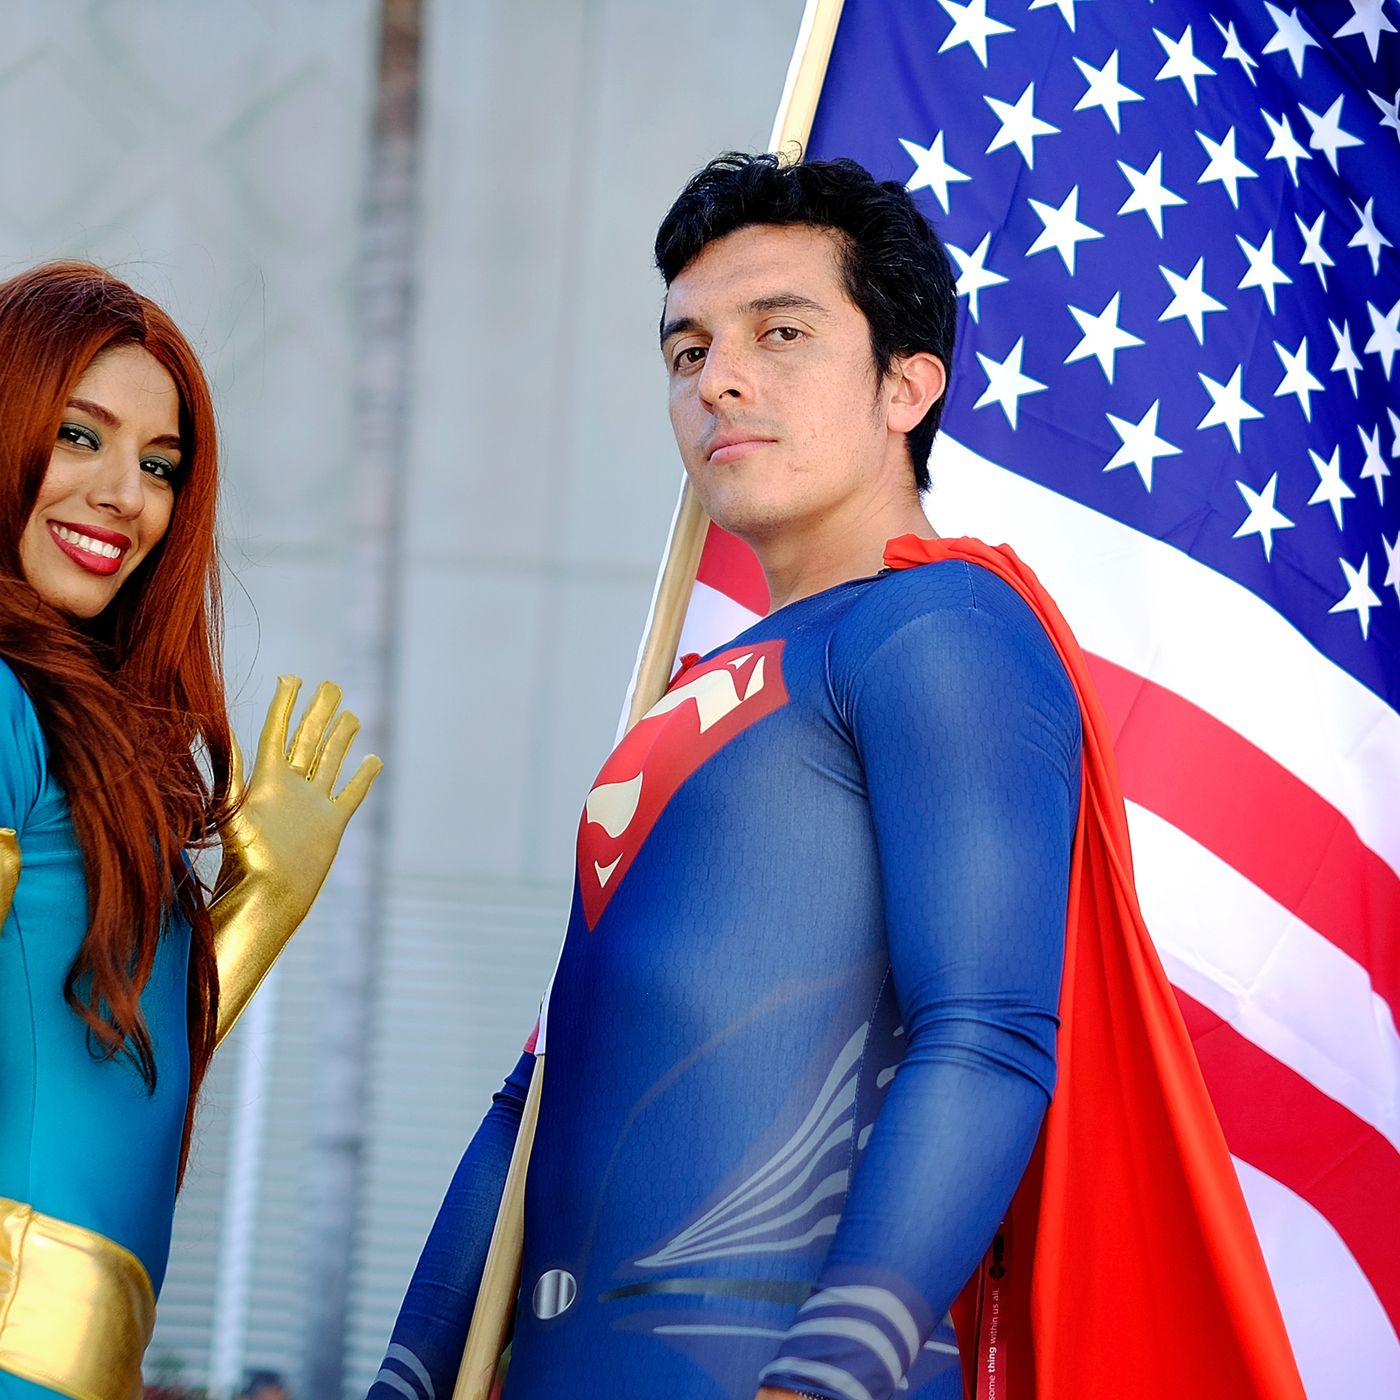 8 questions about Comic-Con you were too embarrassed to ask